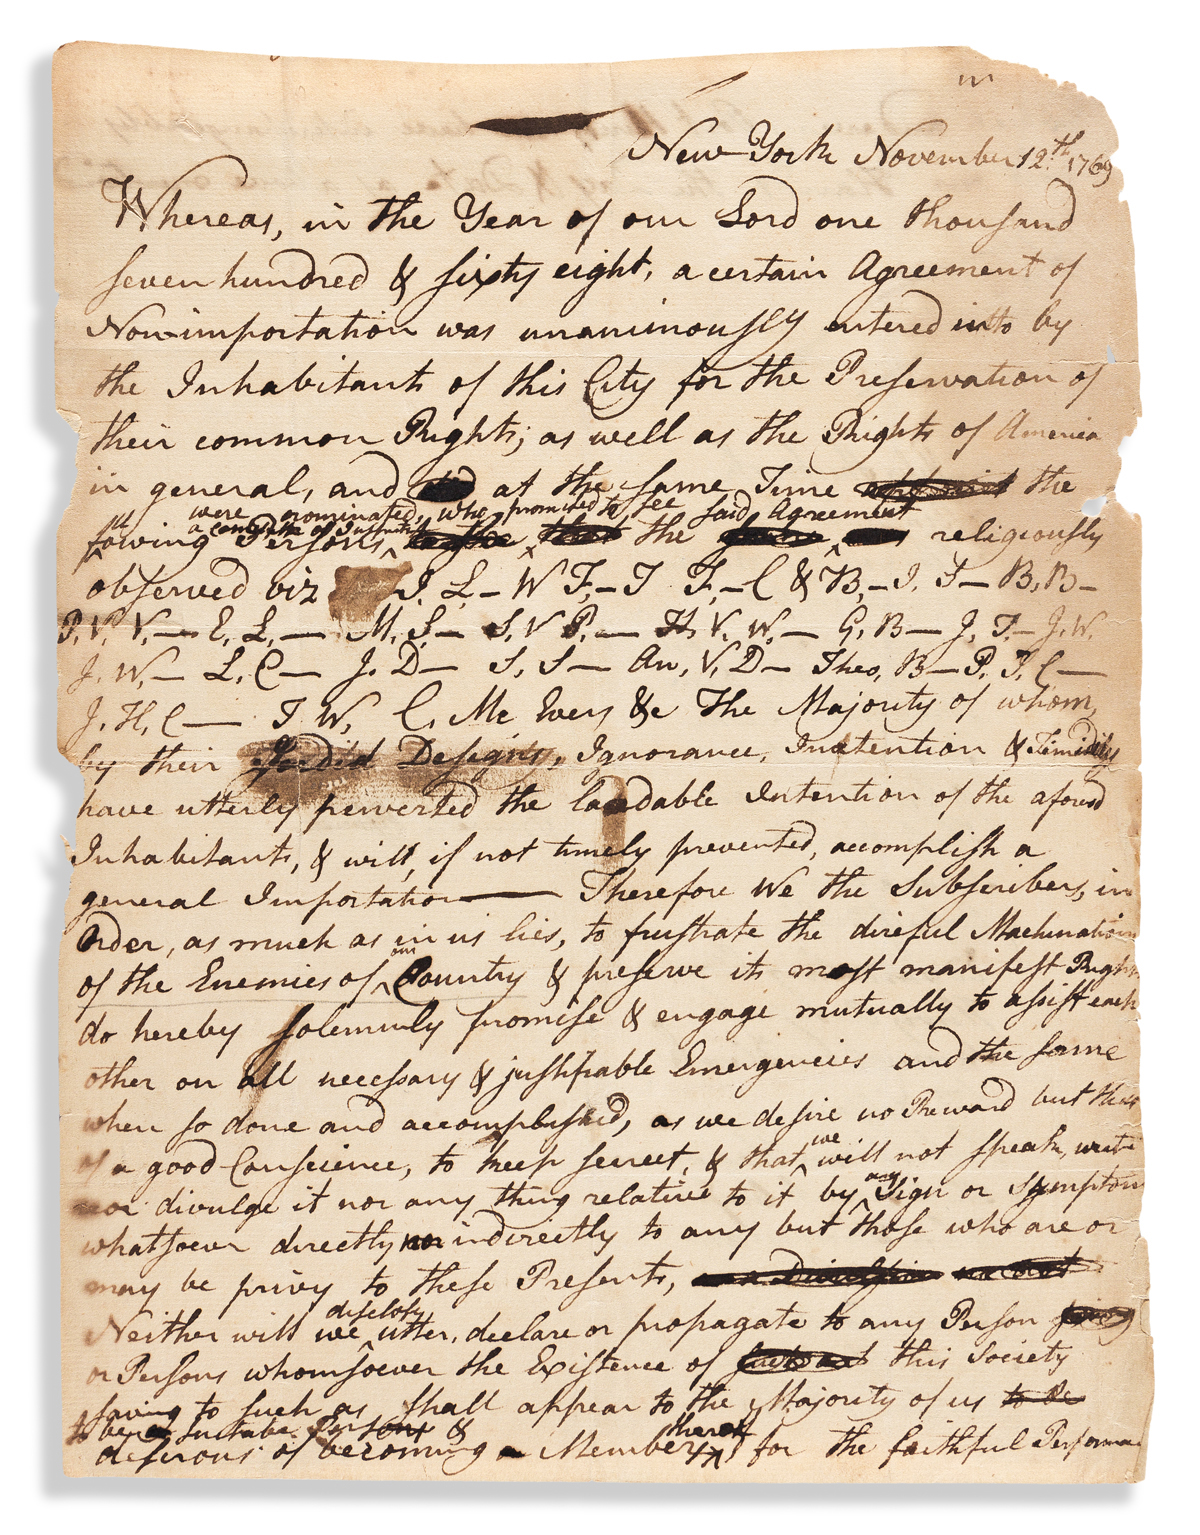 (AMERICAN REVOLUTION--PRELUDE.) Pact to enforce New Yorks Agreement of Non-Importation during the heyday of the Sons of Liberty.